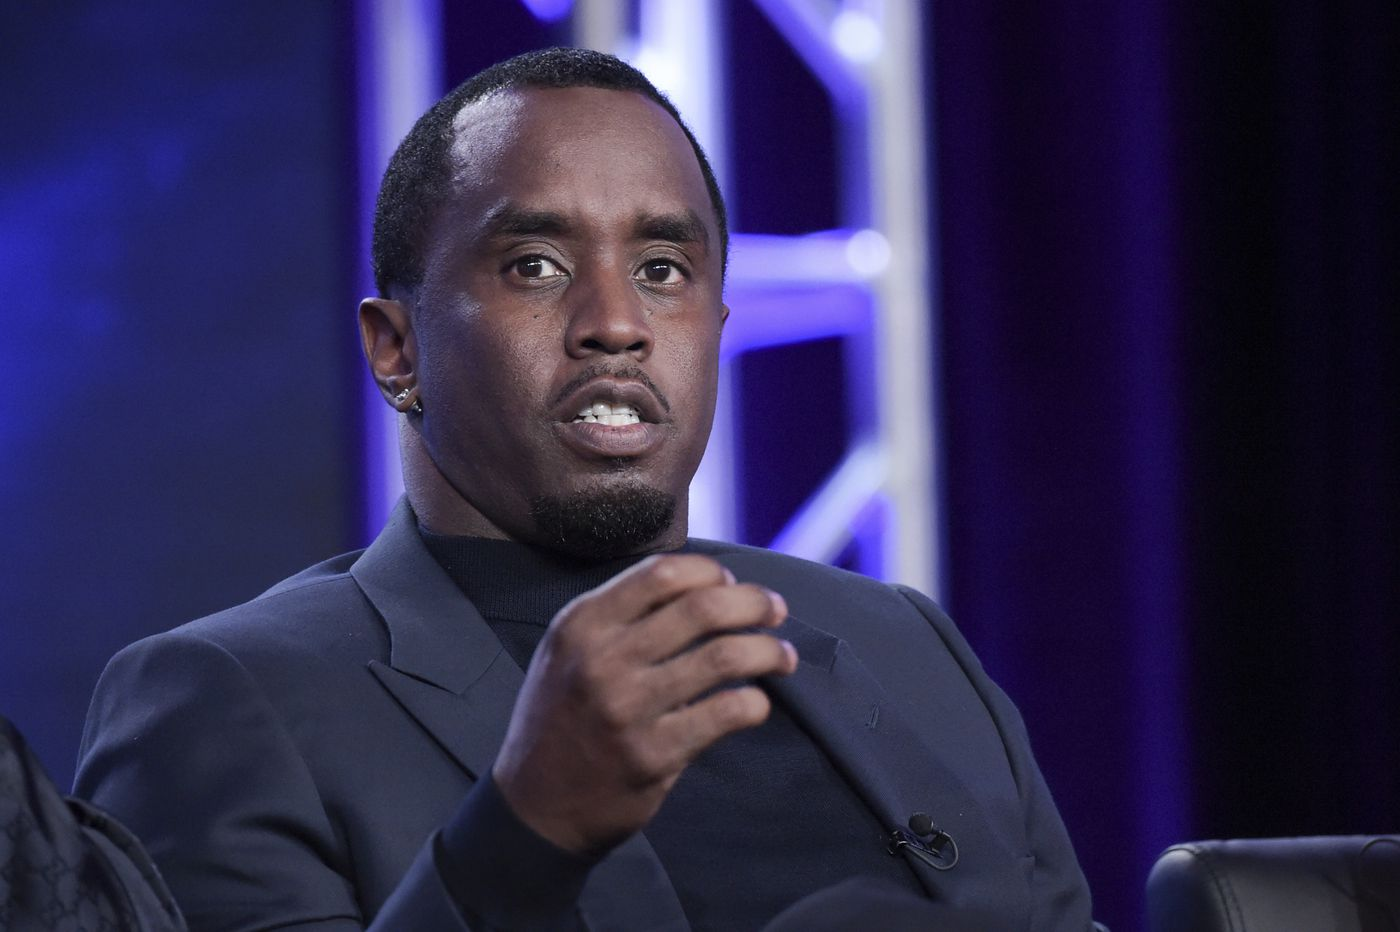 Diddy Tells People To Use Their White Privilege To Make The Black Lives Matter